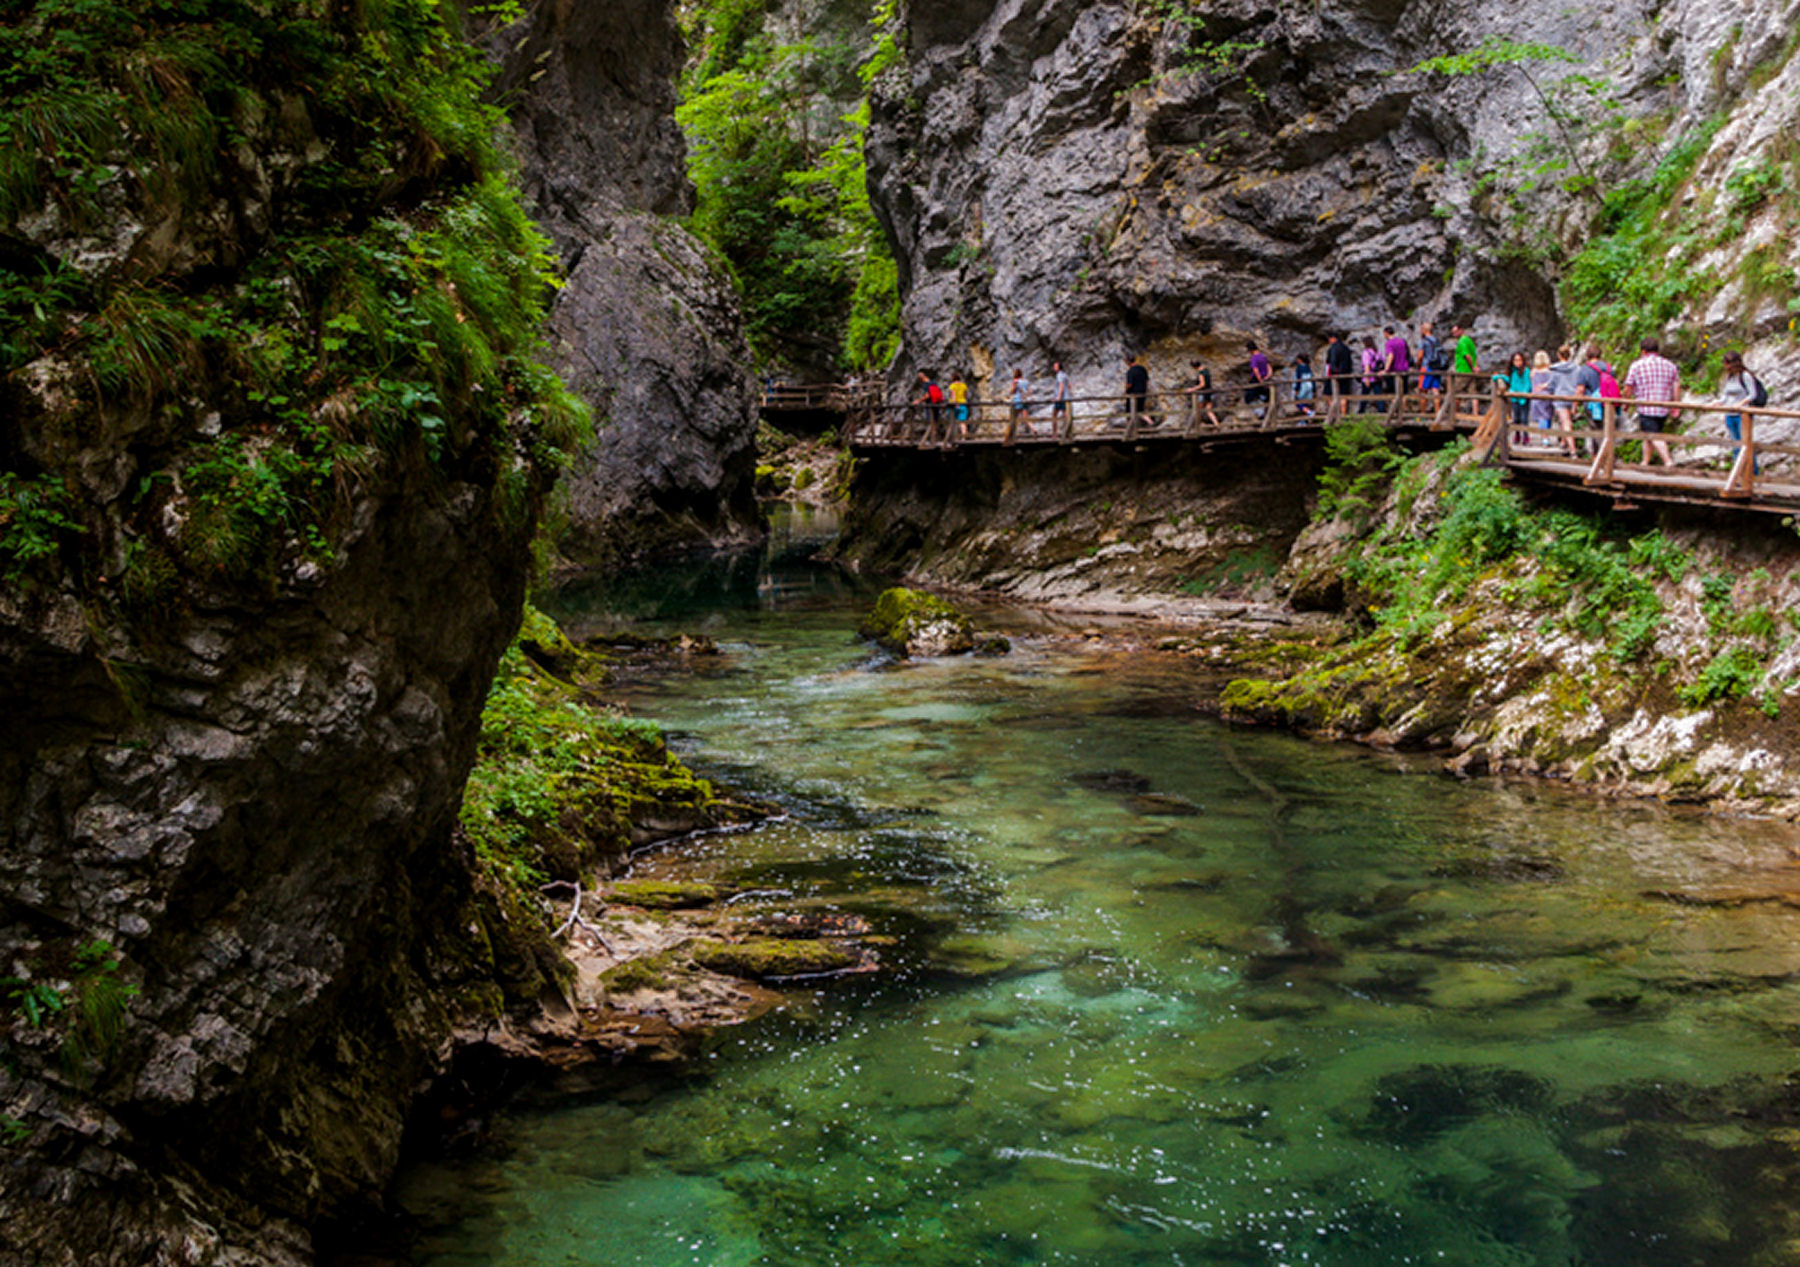 Vintgar Gorge is a little touristy with a boardwalk through the entire gorge